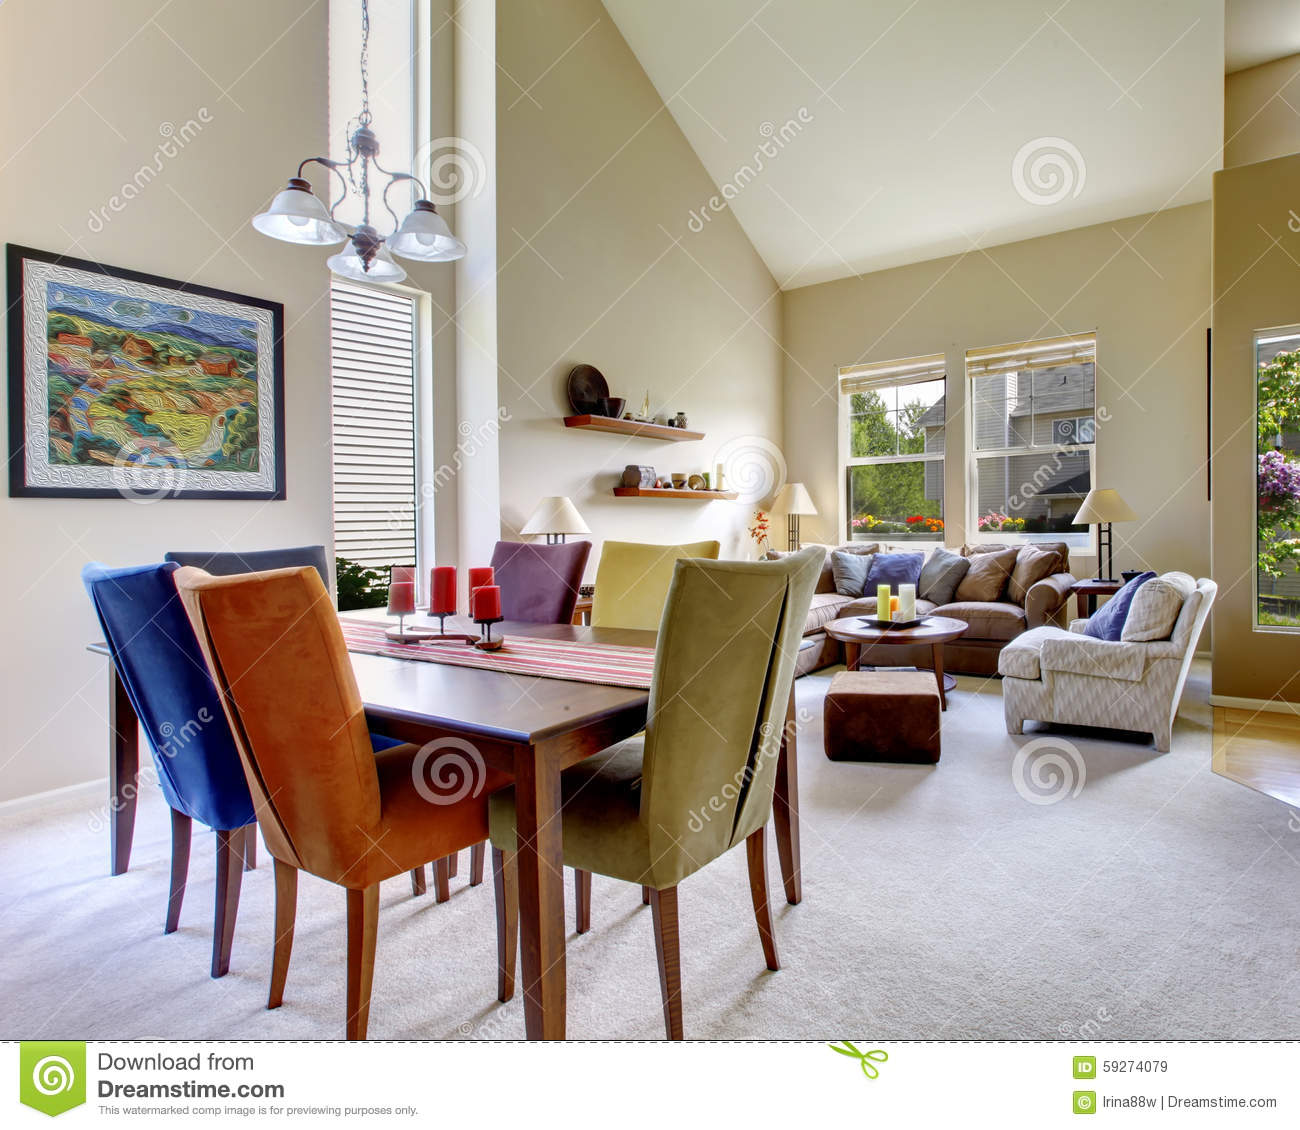 Images libres de droits large beige bright living room for Chaise couleur salle a manger